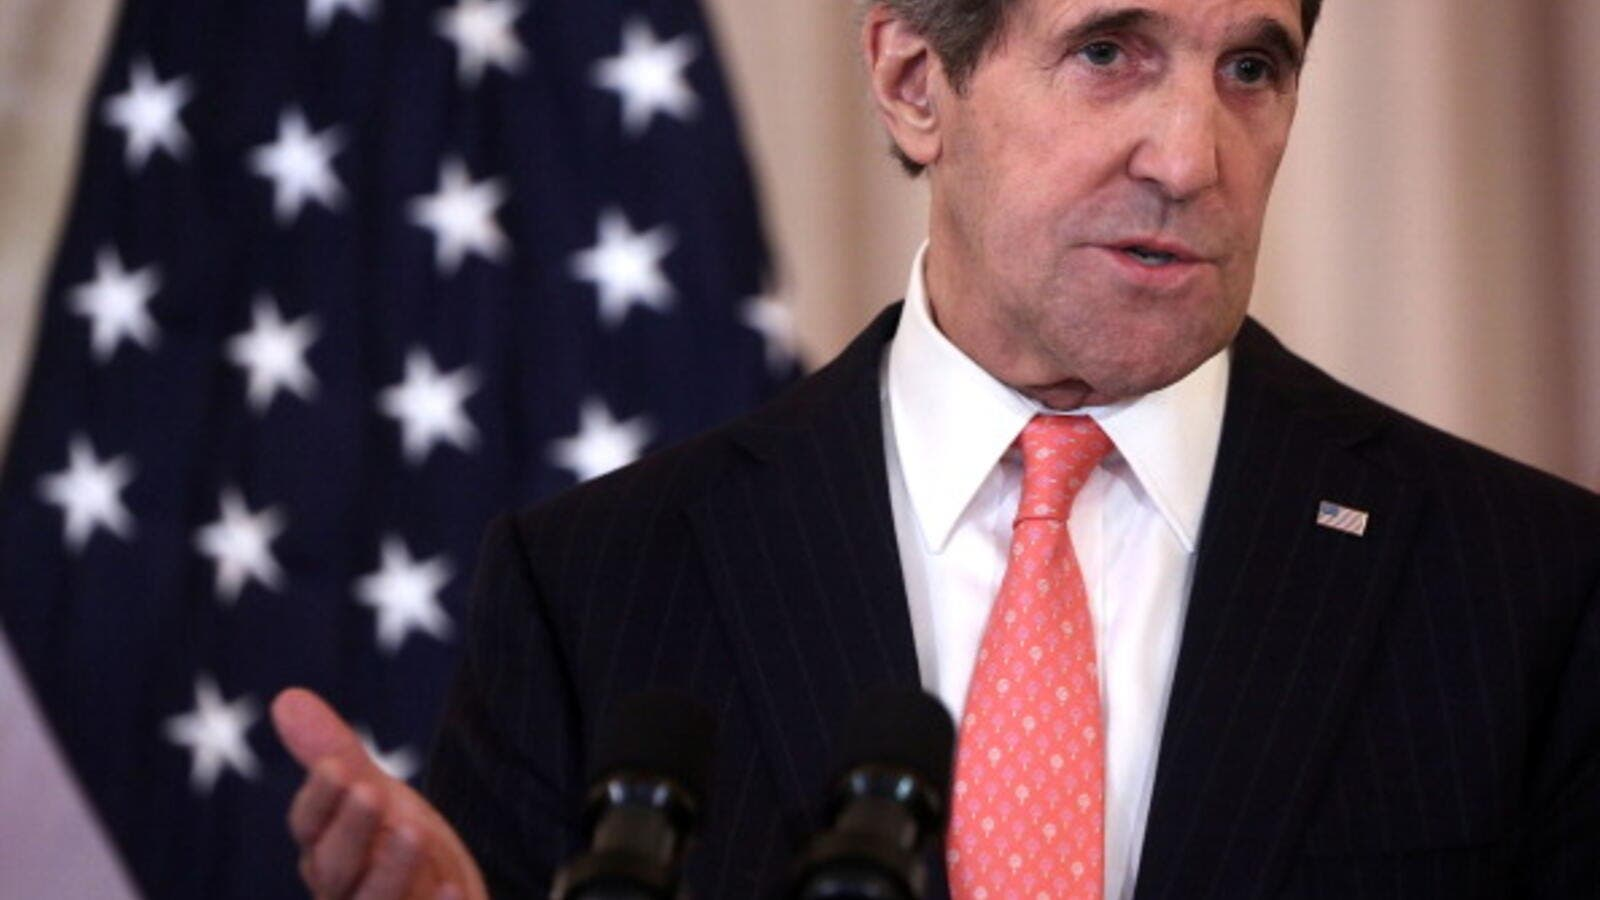 With less than 48 hours before Geneva nuclear talks, Kerry